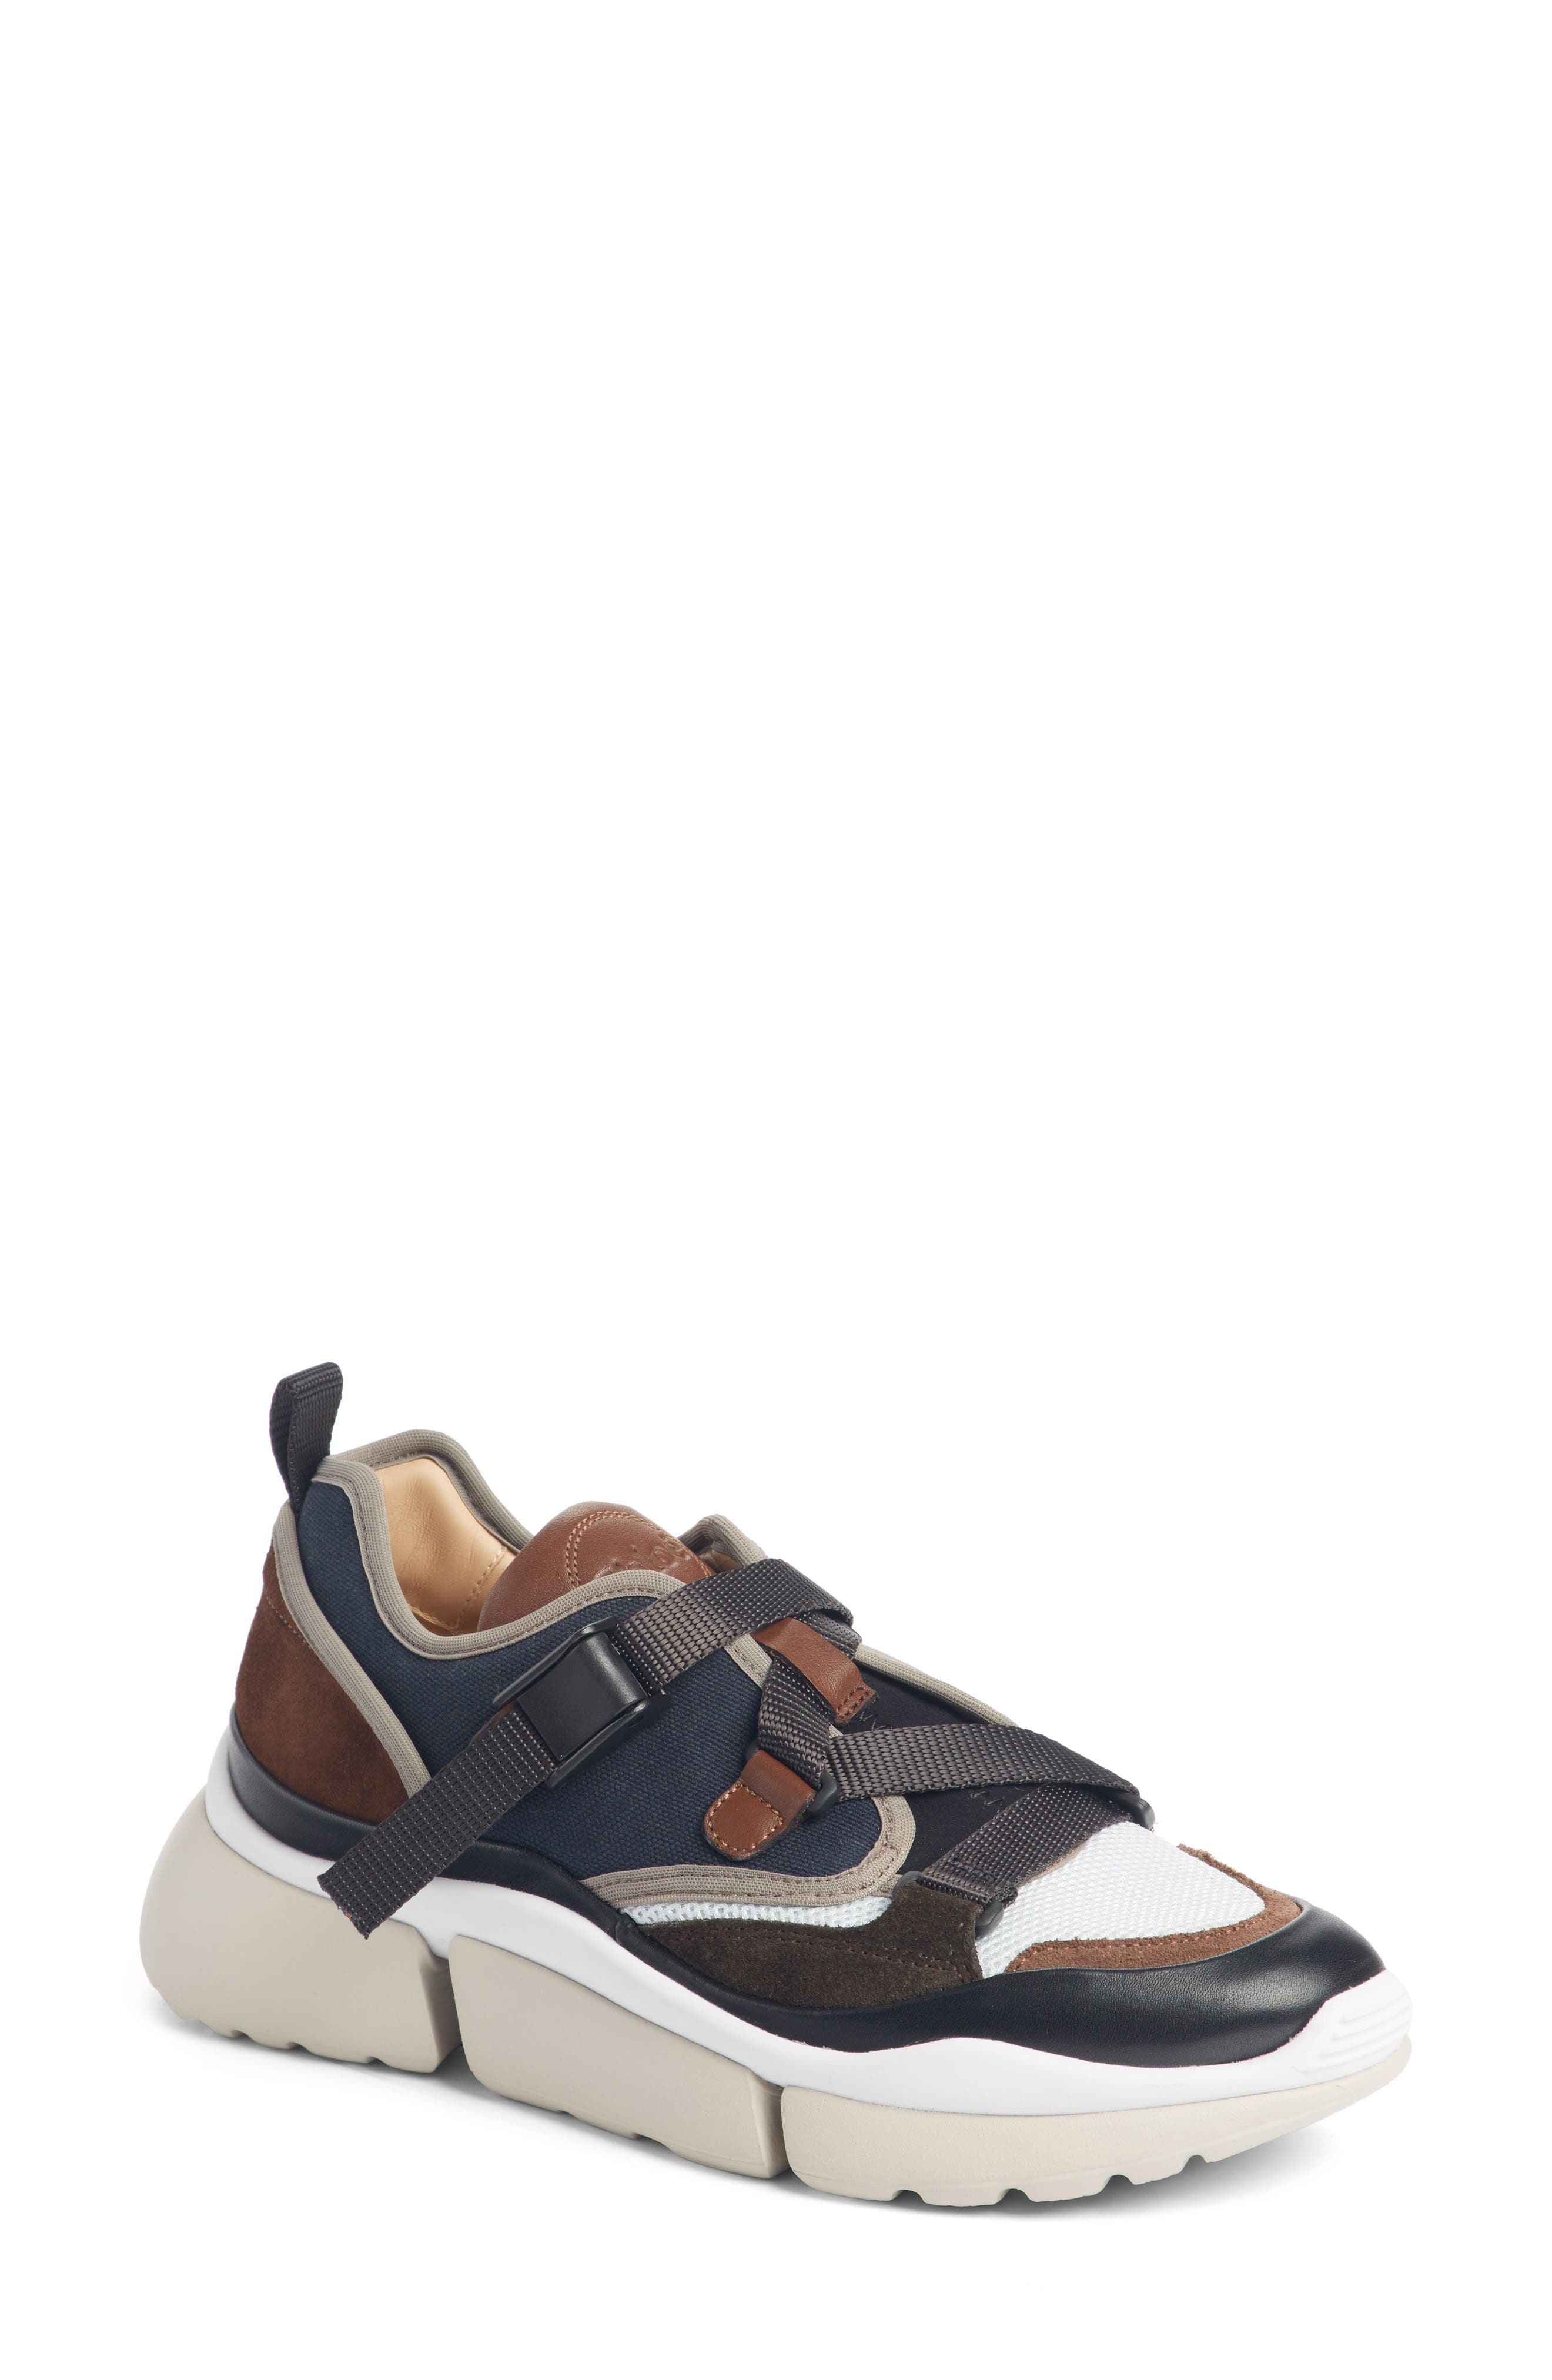 Chloe Sonnie Low Top Sneaker, Blue